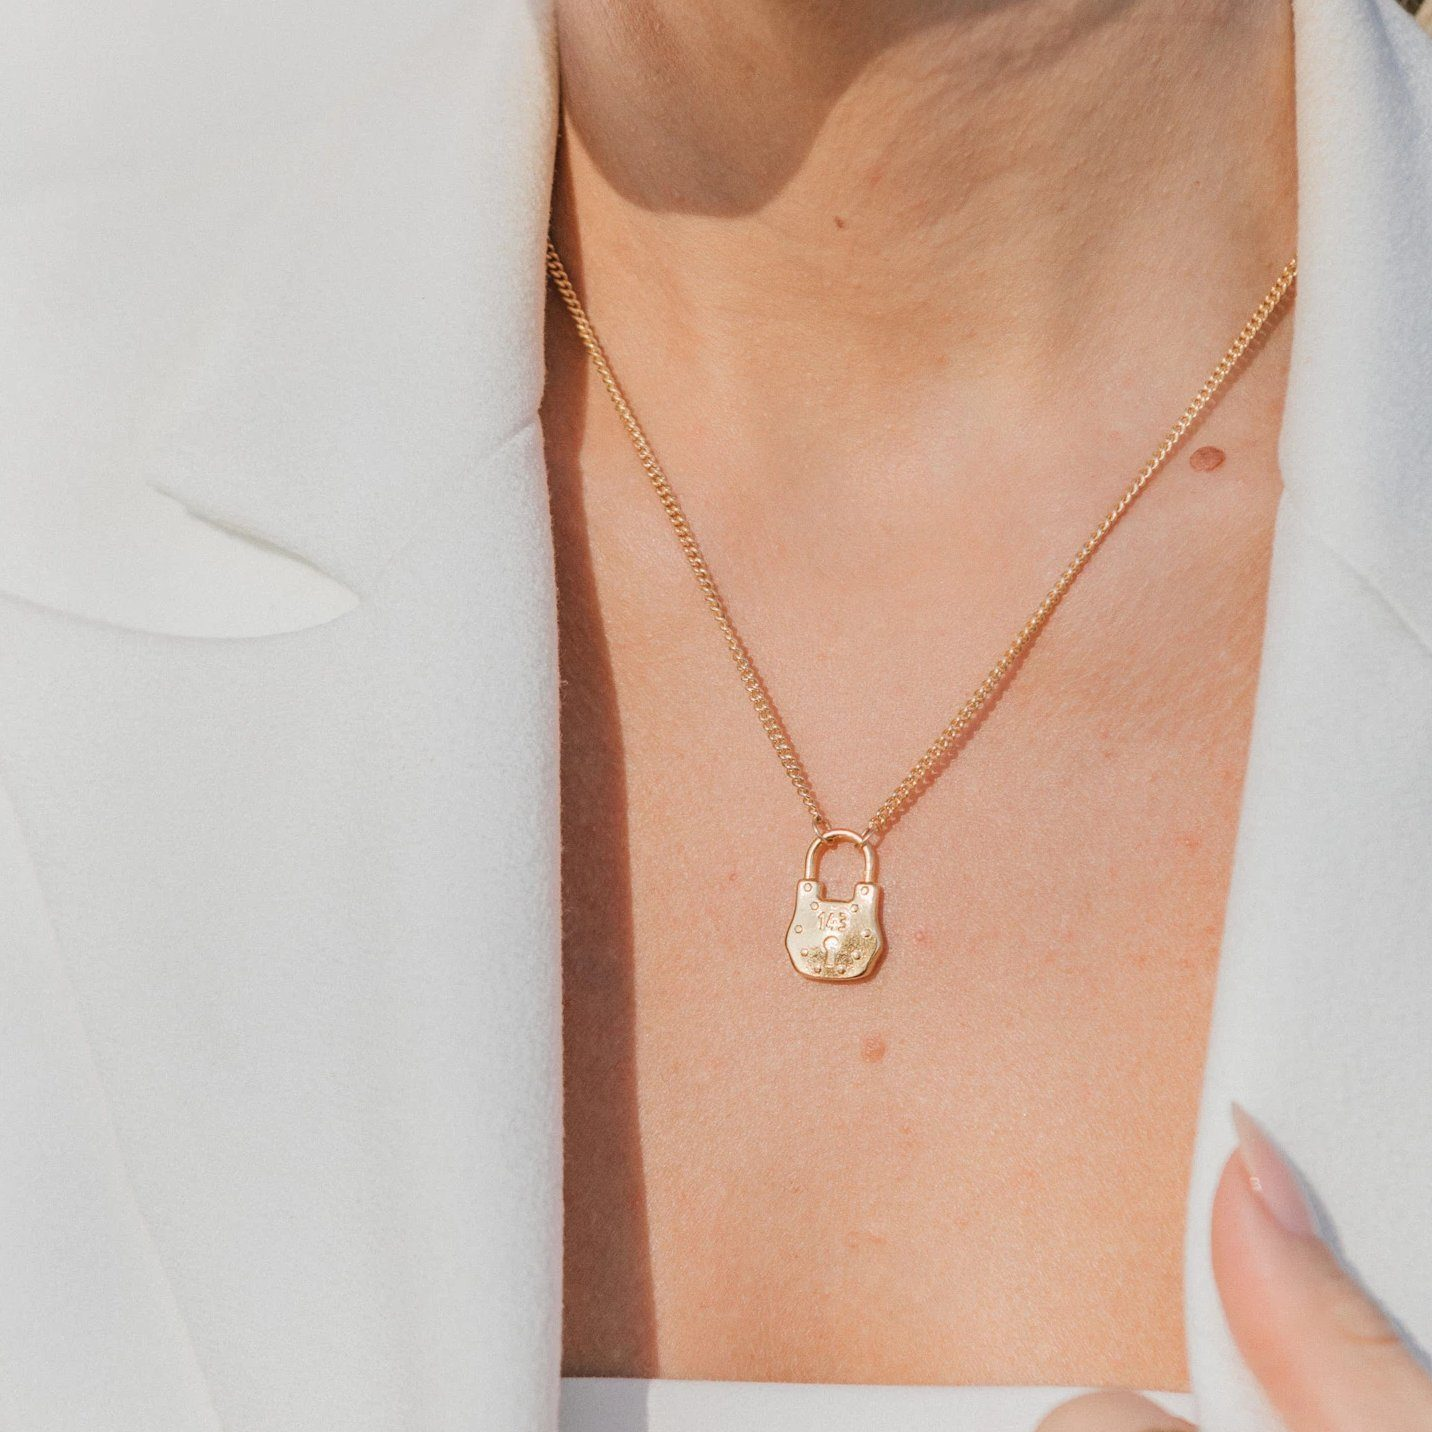 Image of model wearing the gold Love Lock Necklace with a white top.